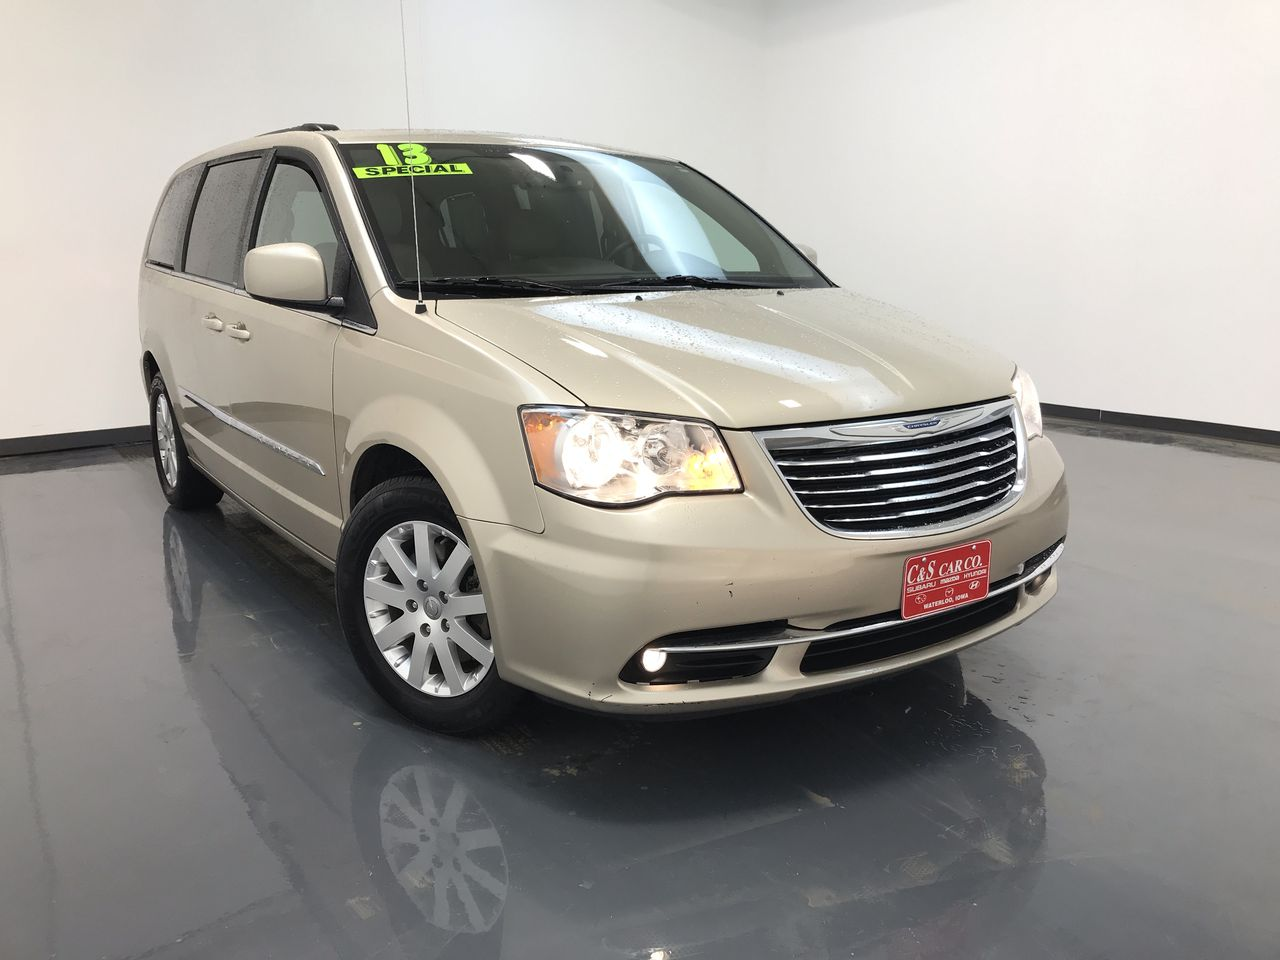 2013 Chrysler Town & Country  - C & S Car Company